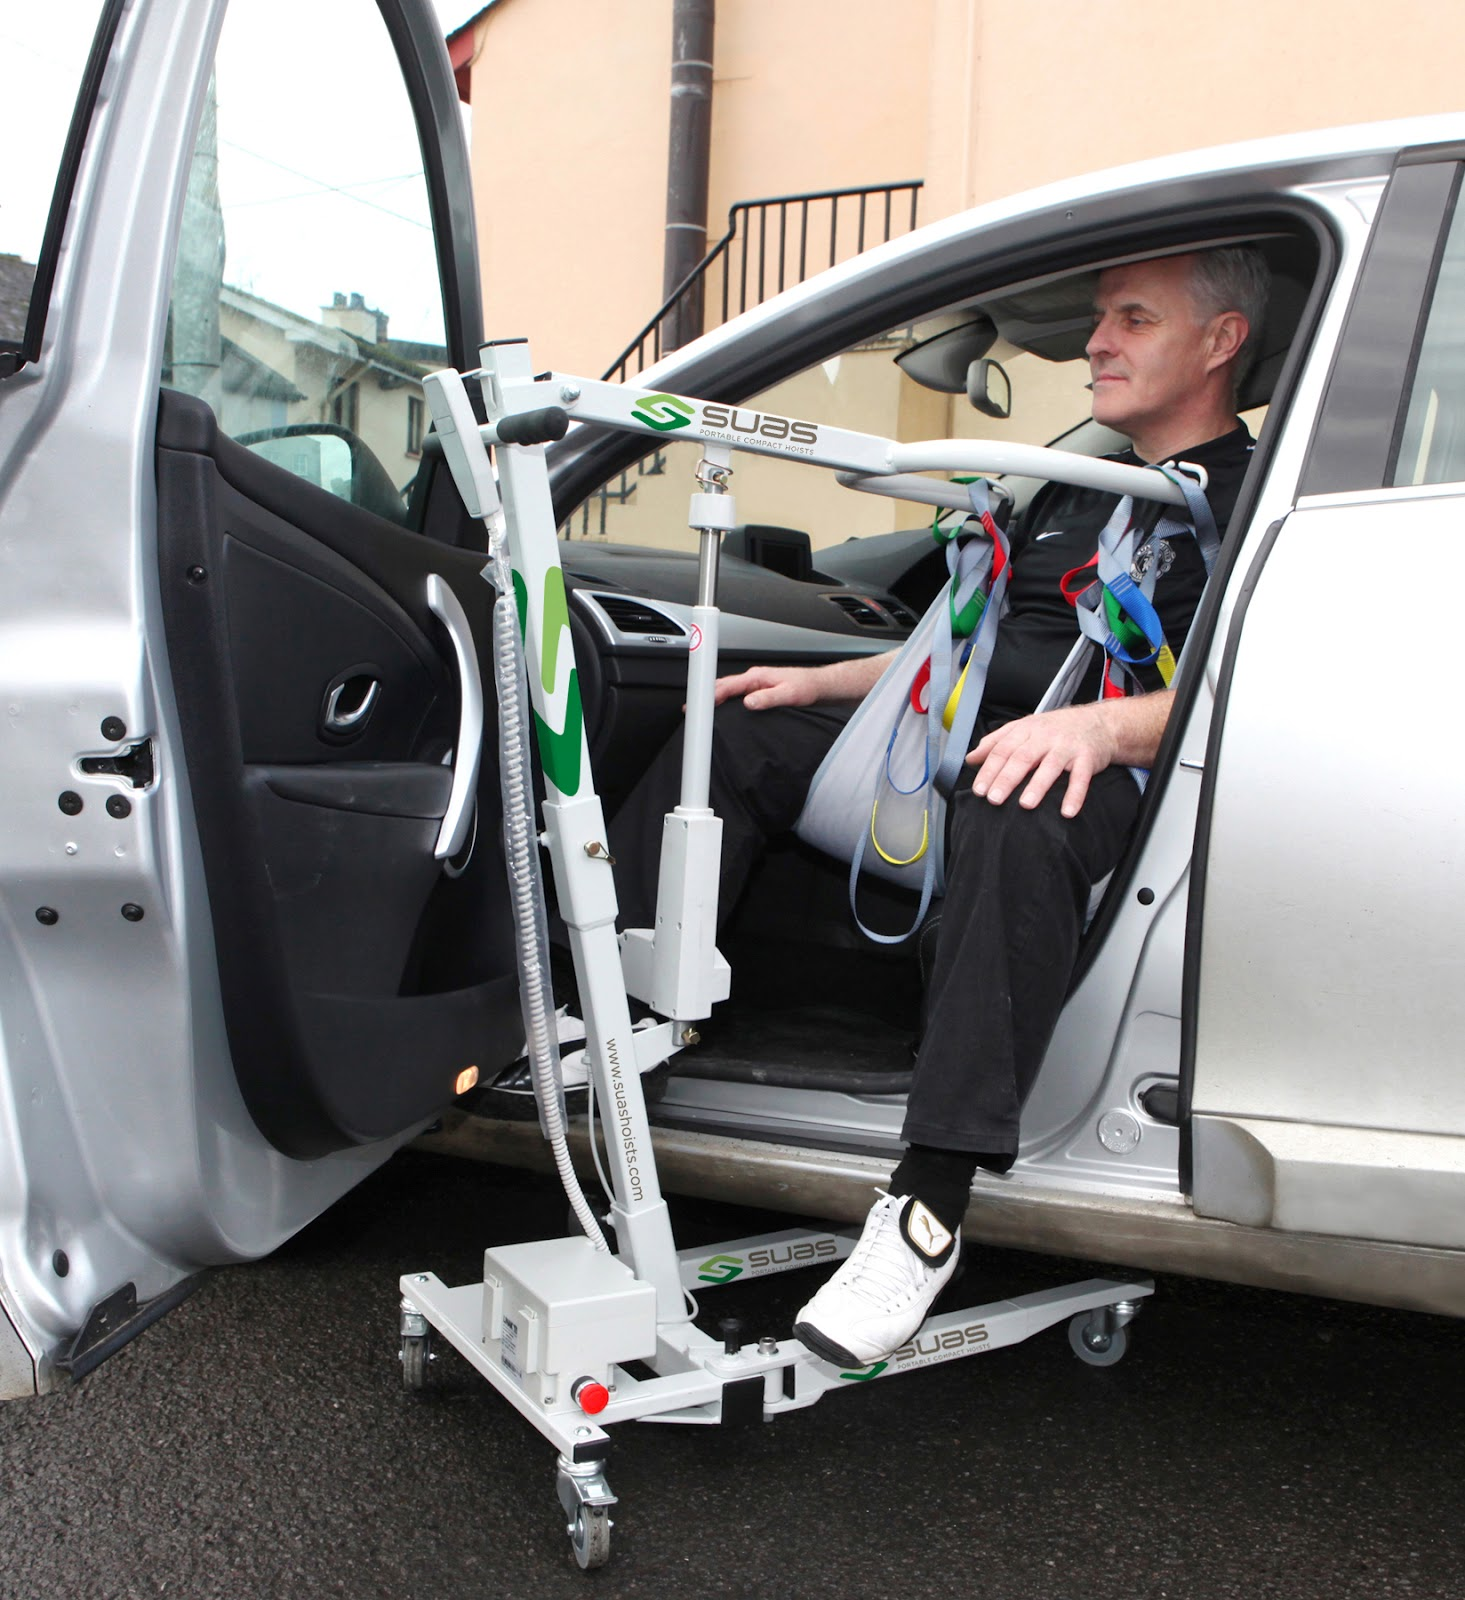 Lift For Disabled Person : Mobility products for disabled people suas portable hoists